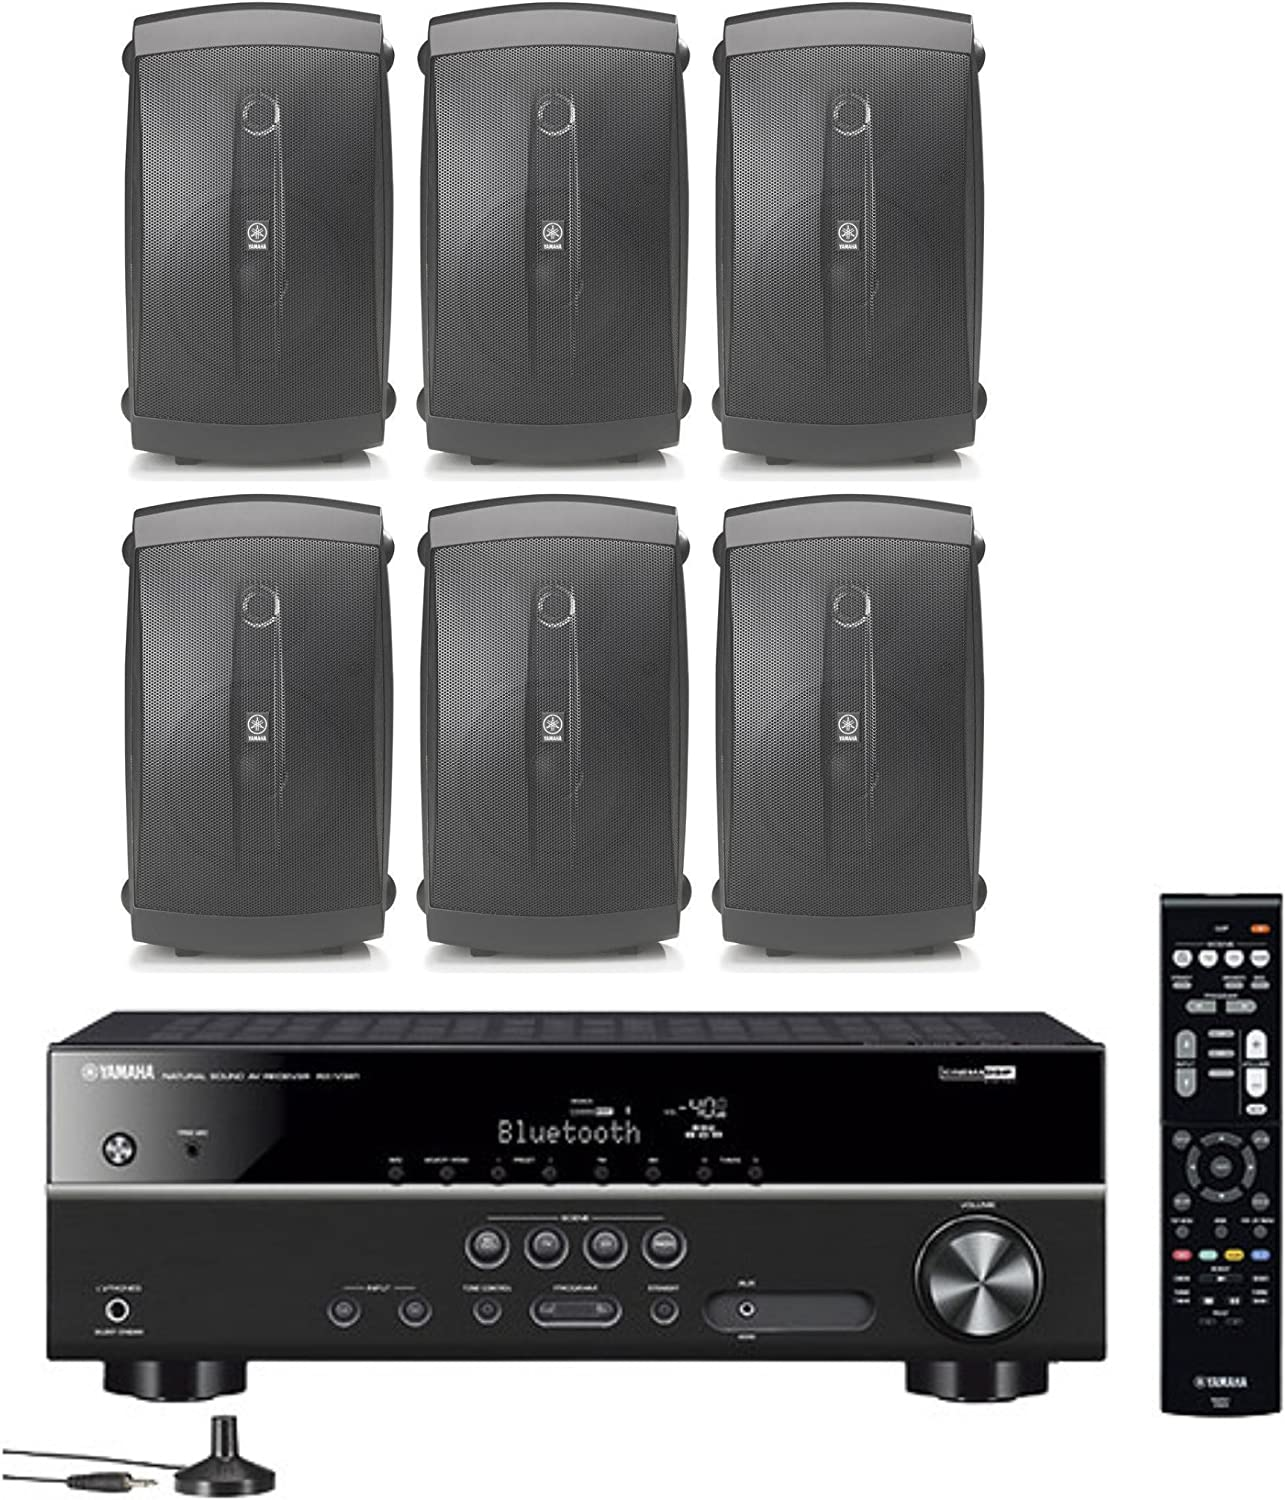 Yamaha 5.1-Channel Wireless Bluetooth 4K A/V Home Theater Receiver + Yamaha Natural Sound 2-Way 120 watts 2-Way Indoor/Outdoor Weatherproof Speakers (Set of 6)